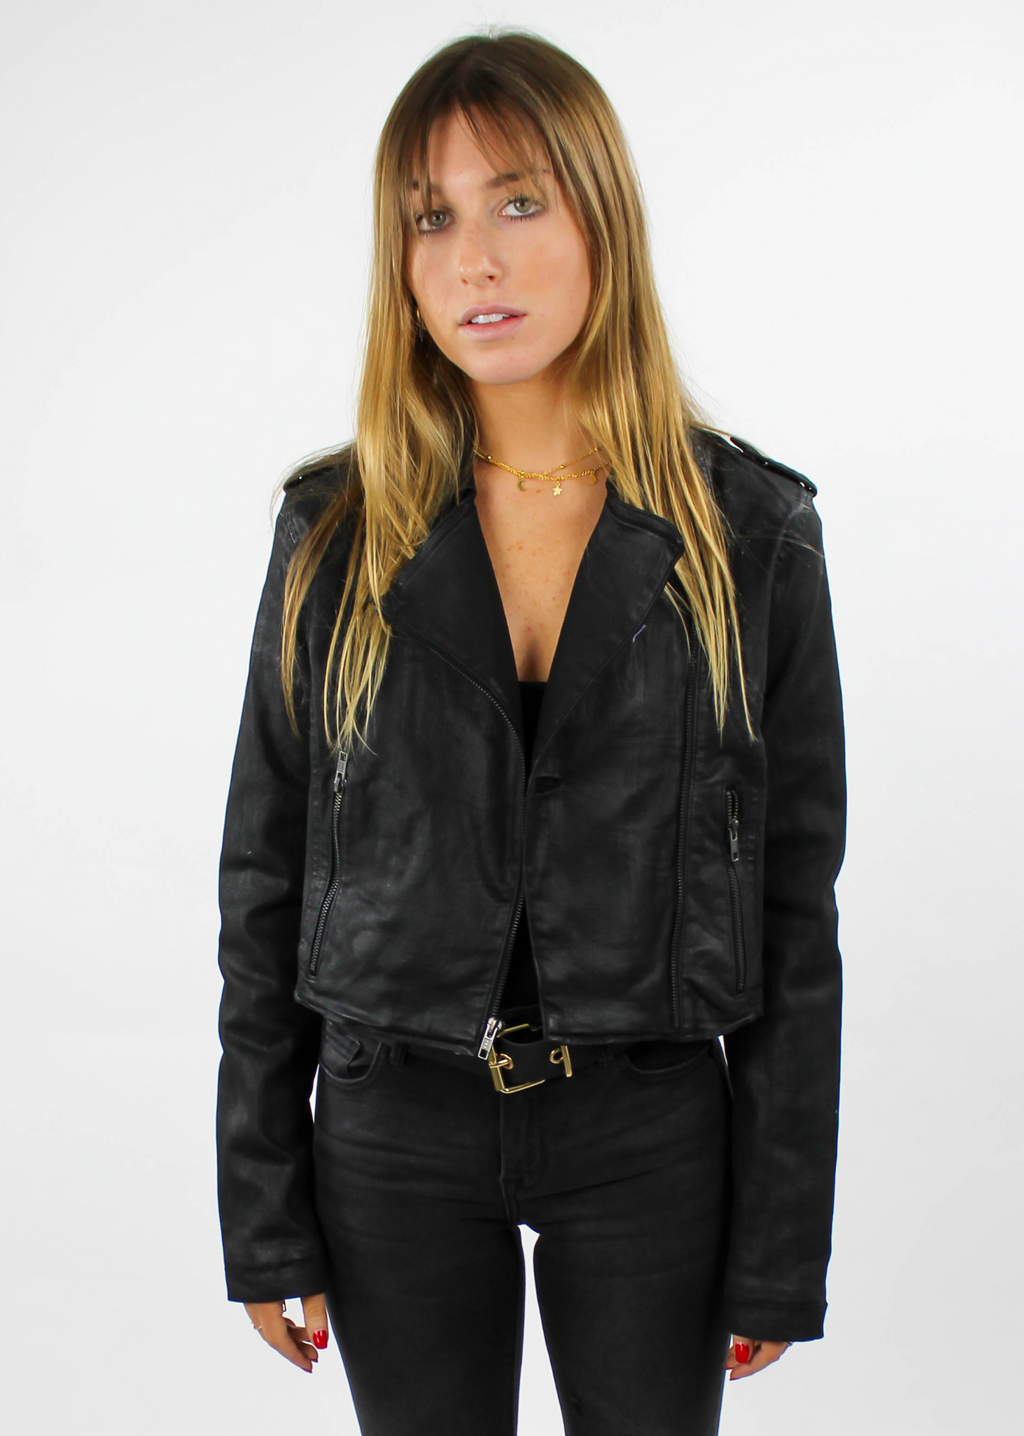 Don't Kill My Vibe Jacket ★ Black - Rock N Rags